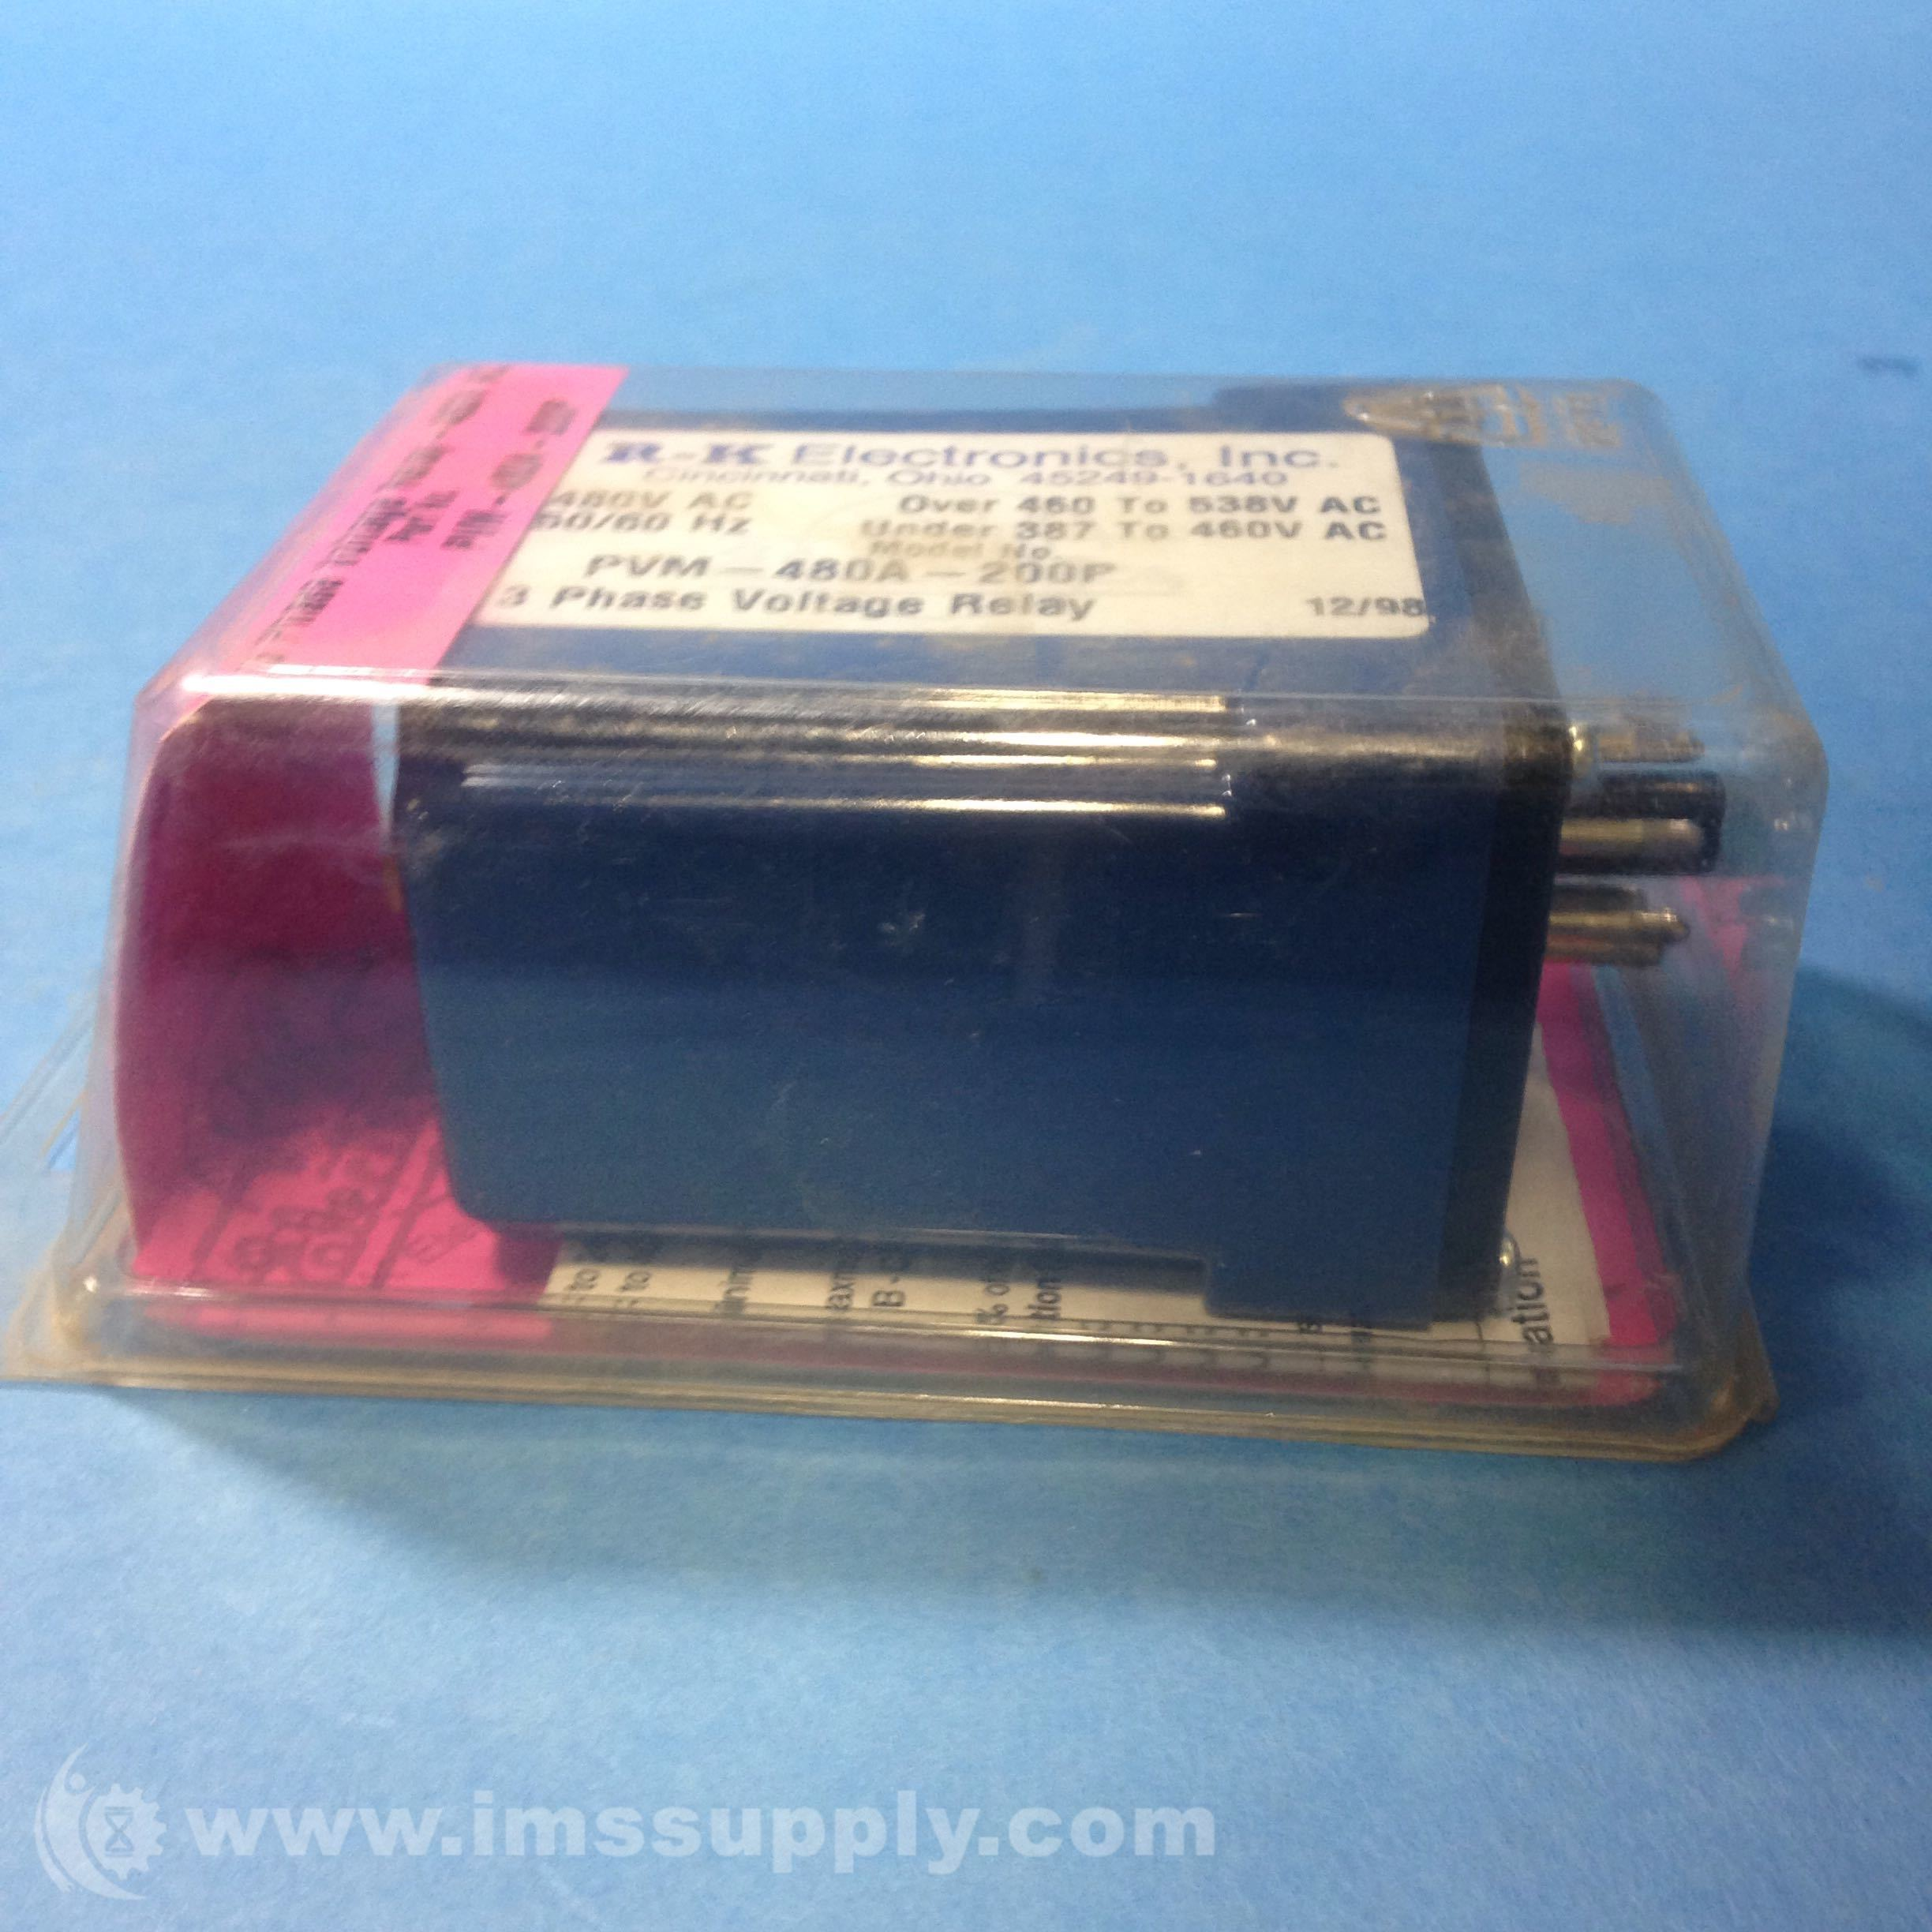 Rk Electronics Pvm 480a 200p Relay Voltage Monitor 3phase 480vac Ims Supply